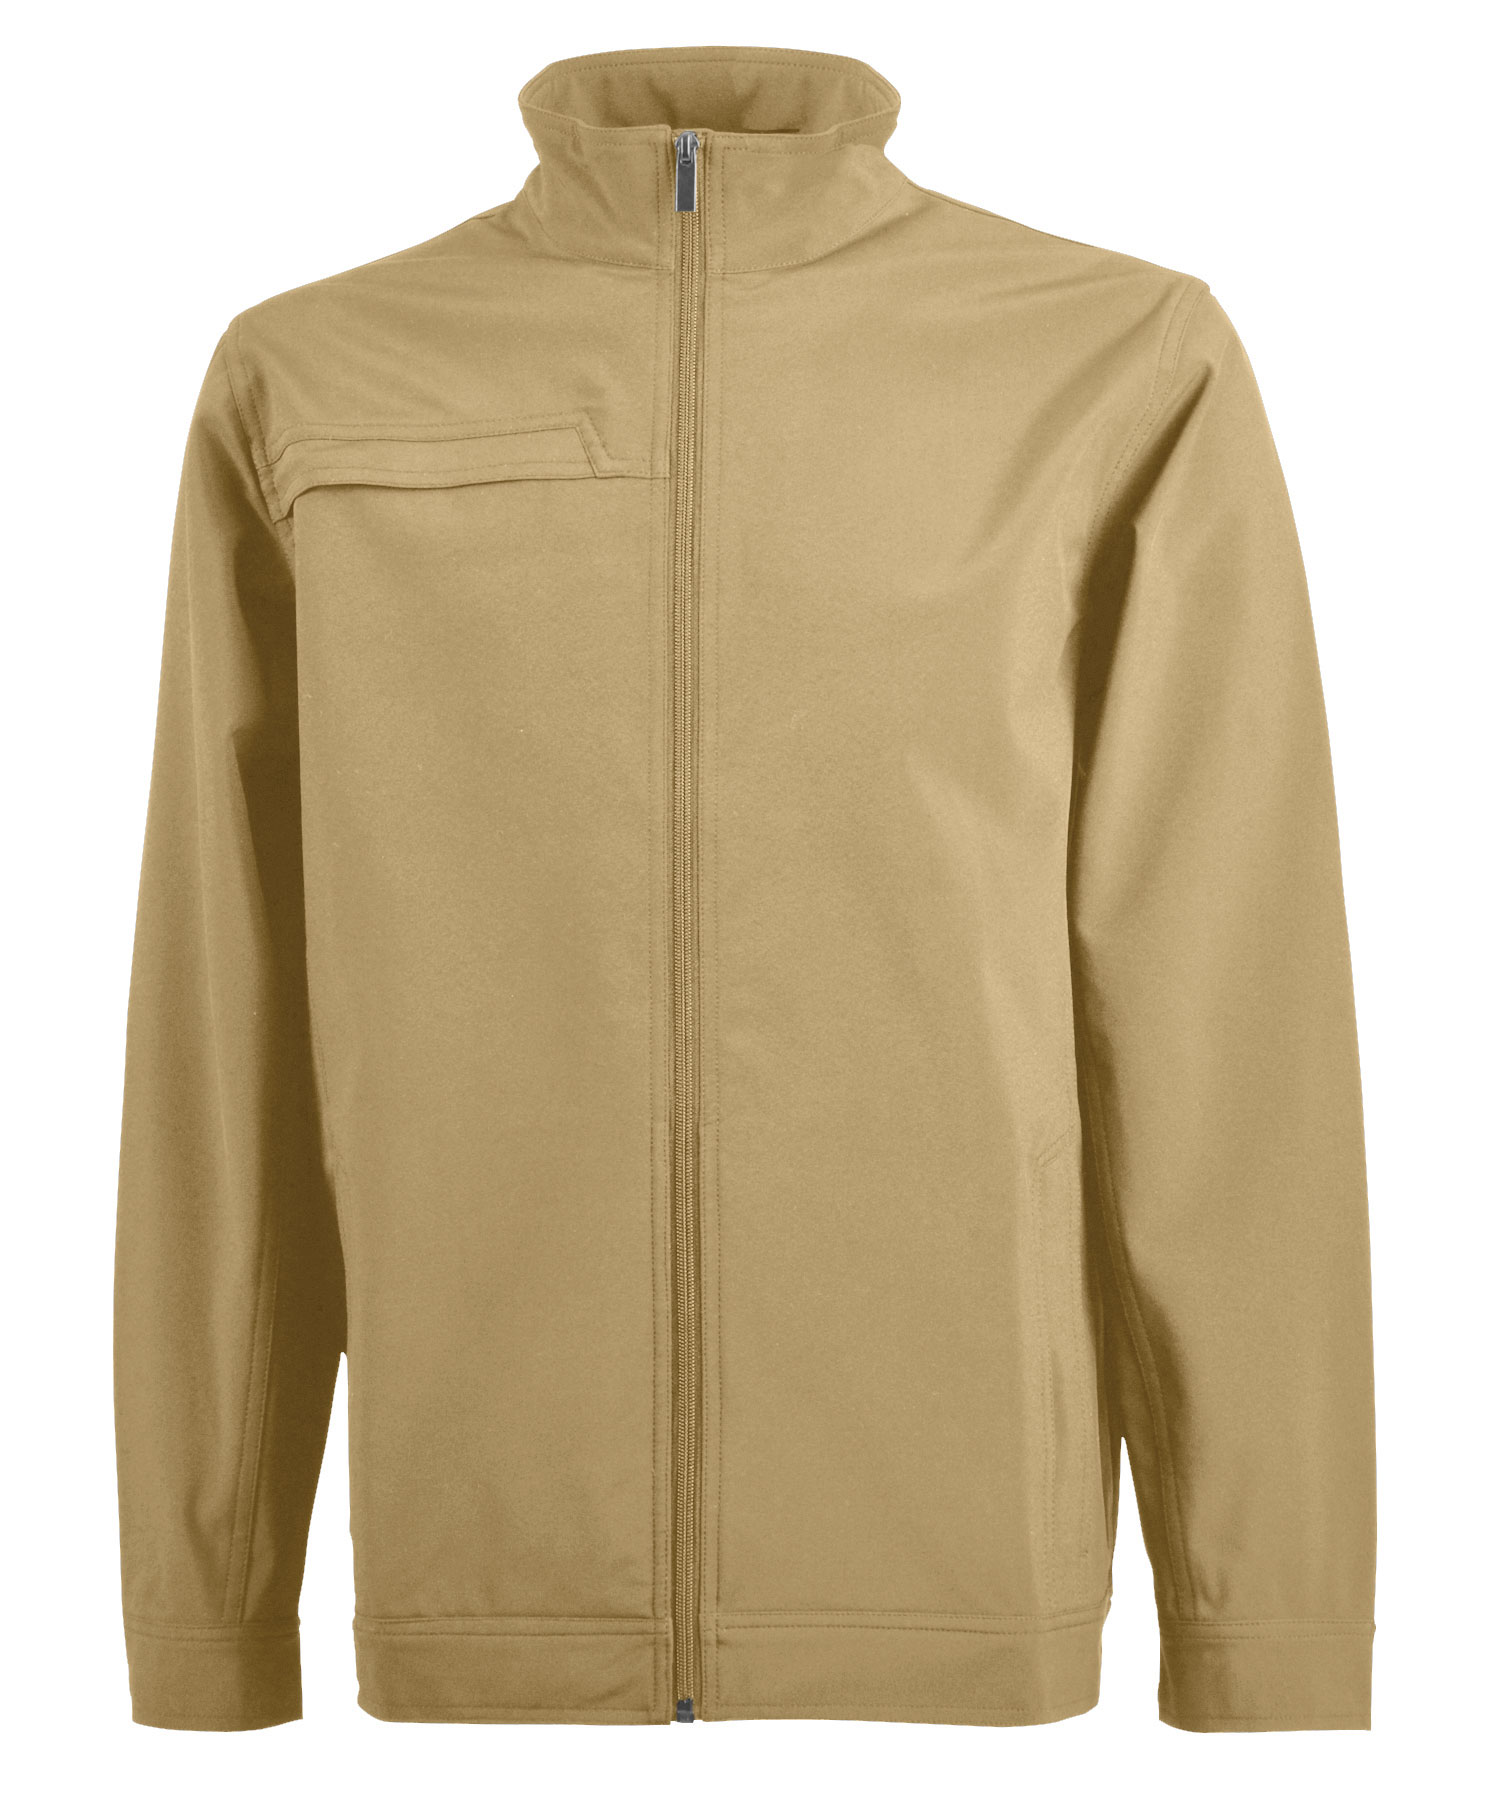 Mens Dockside Jacket by Charles River Apparel